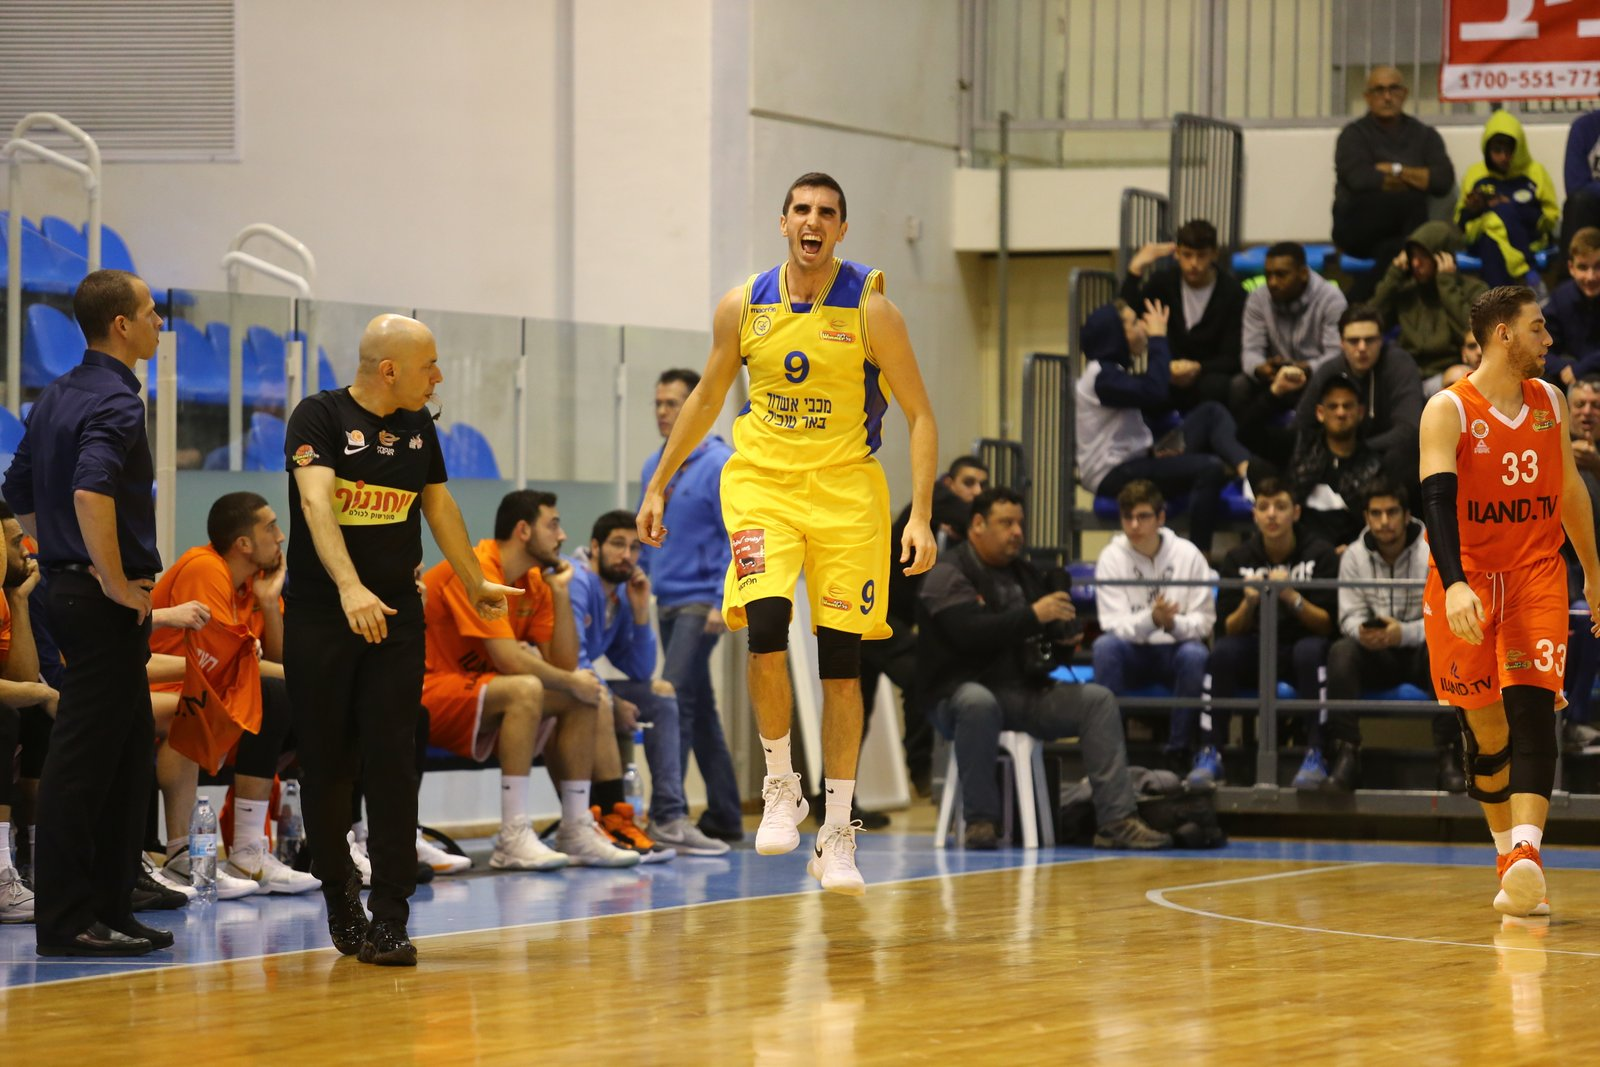 Maccabi Ashdod's Club Record 18 three's!